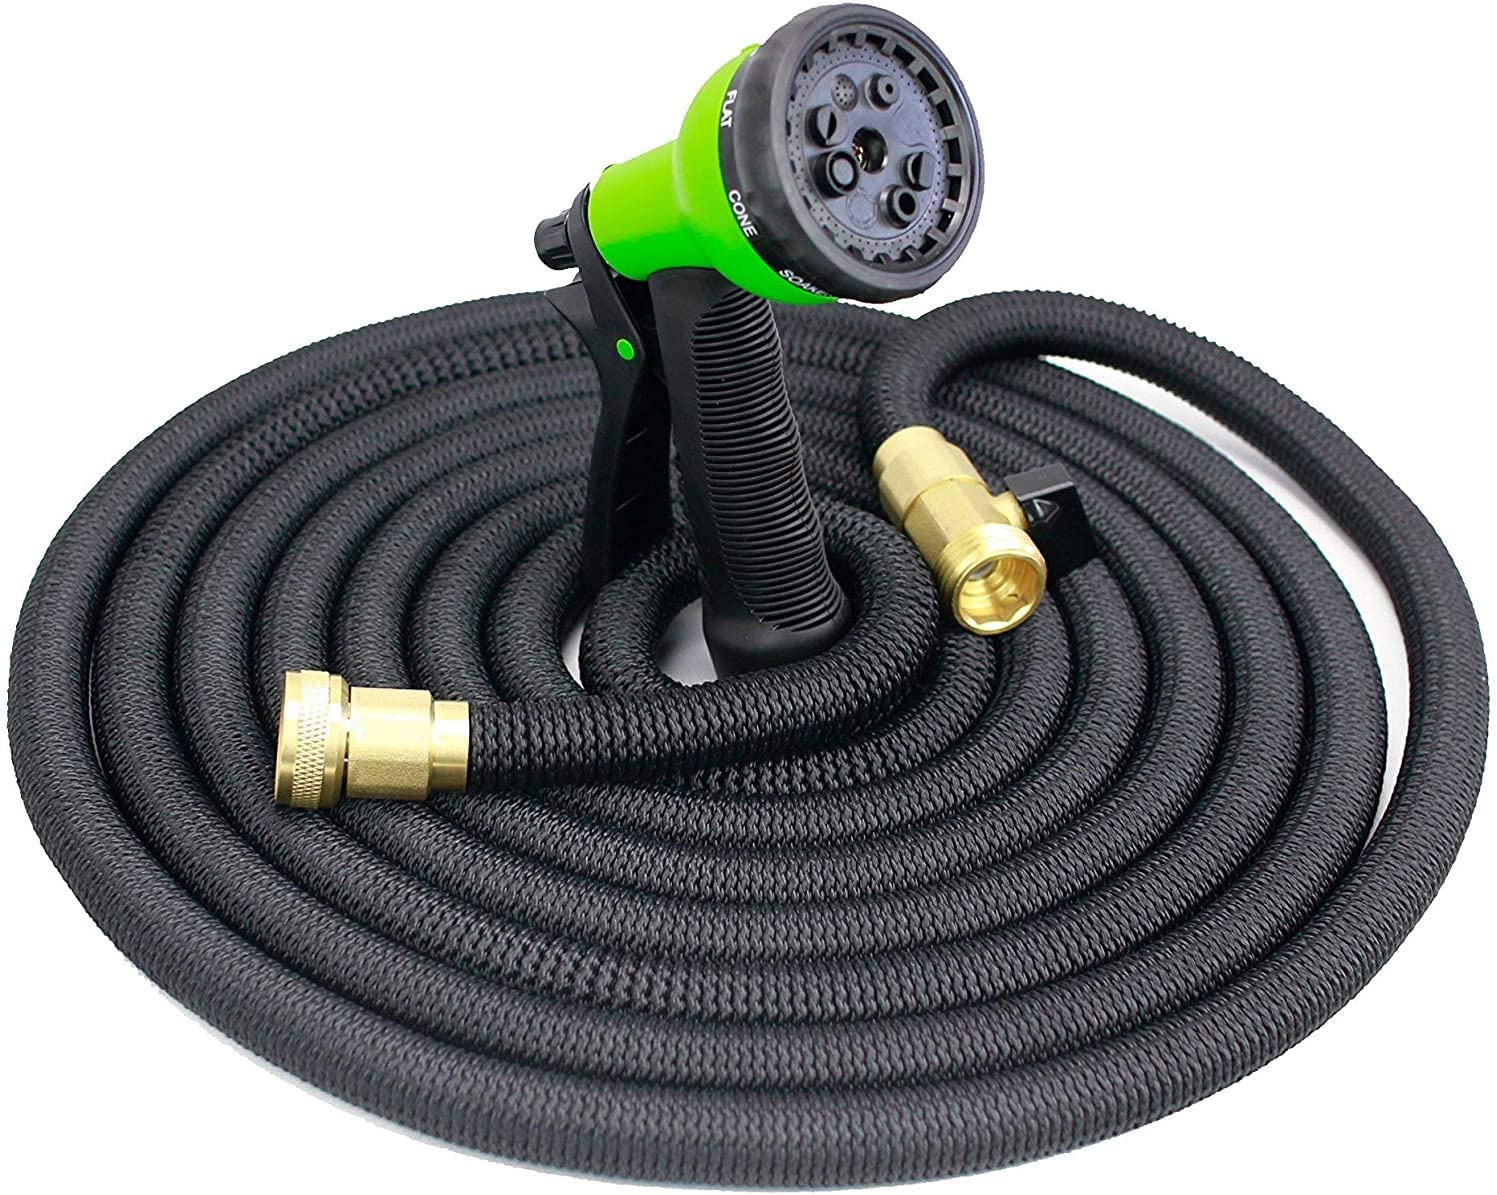 FUNTRESS Garden Hose 75 ft Collapsible Water Hose for Car Wash/Yard